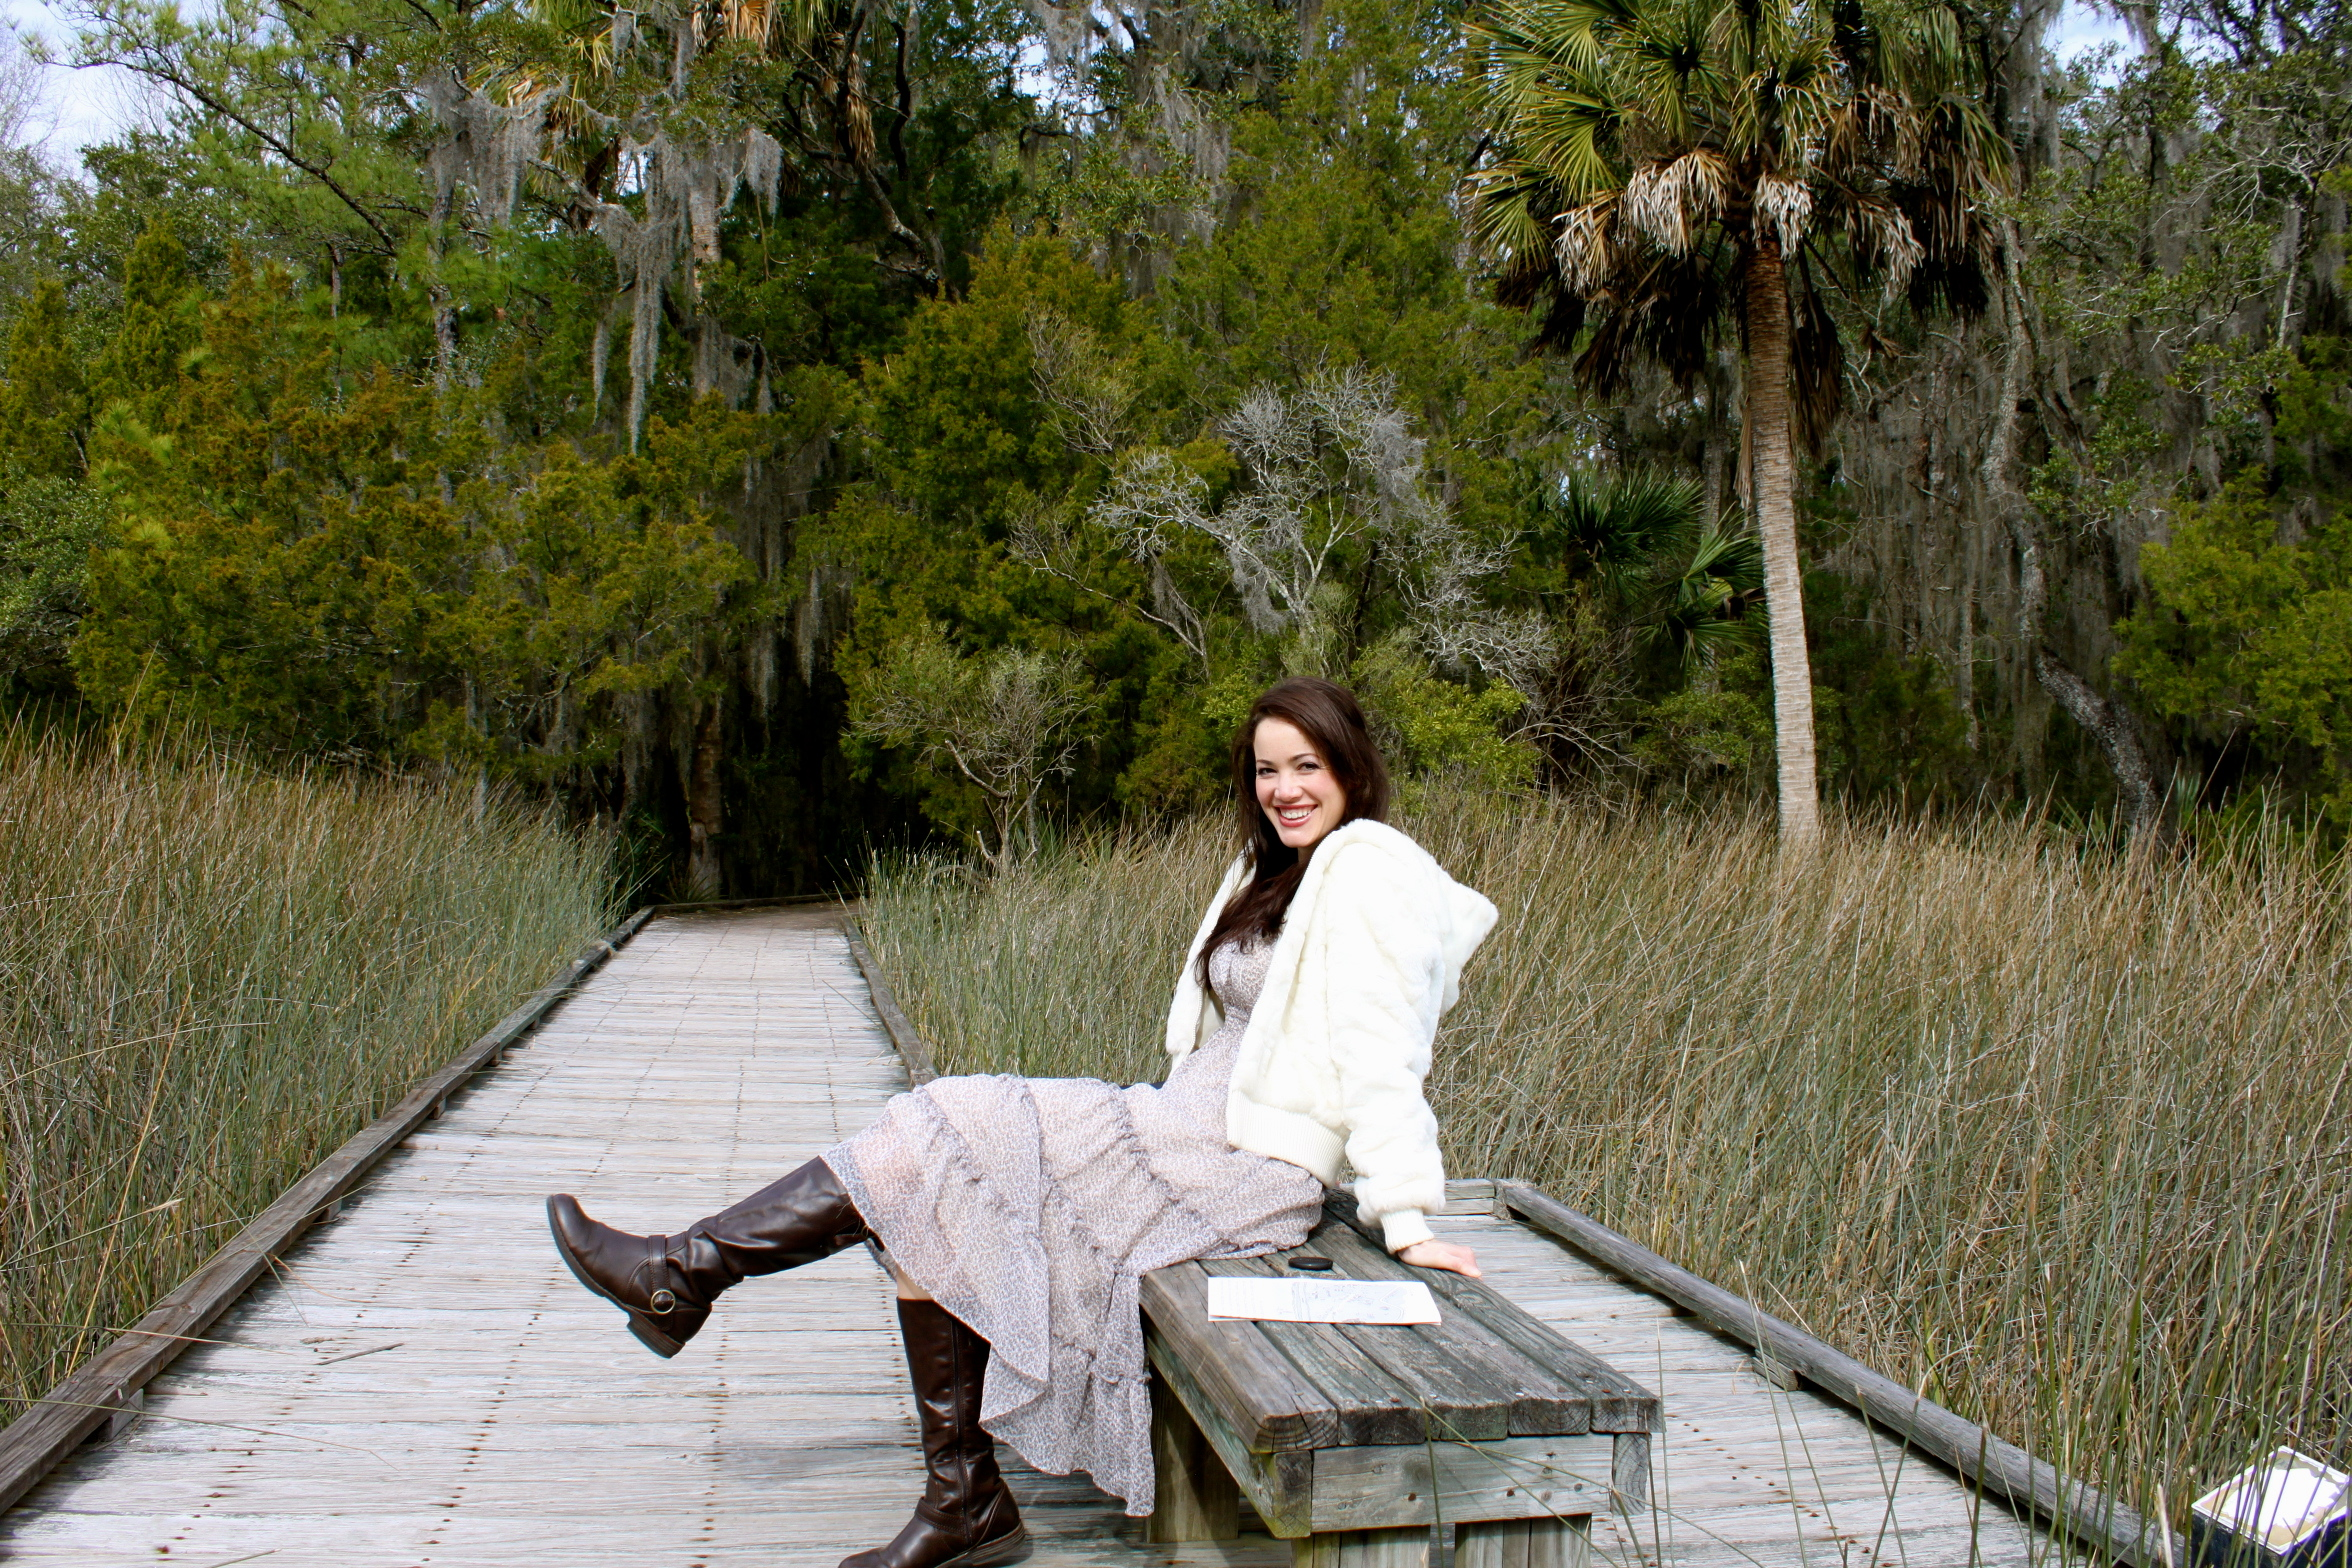 The swampy boardwalk had little benches for sitting, lazing, or kicking up your boot heels.